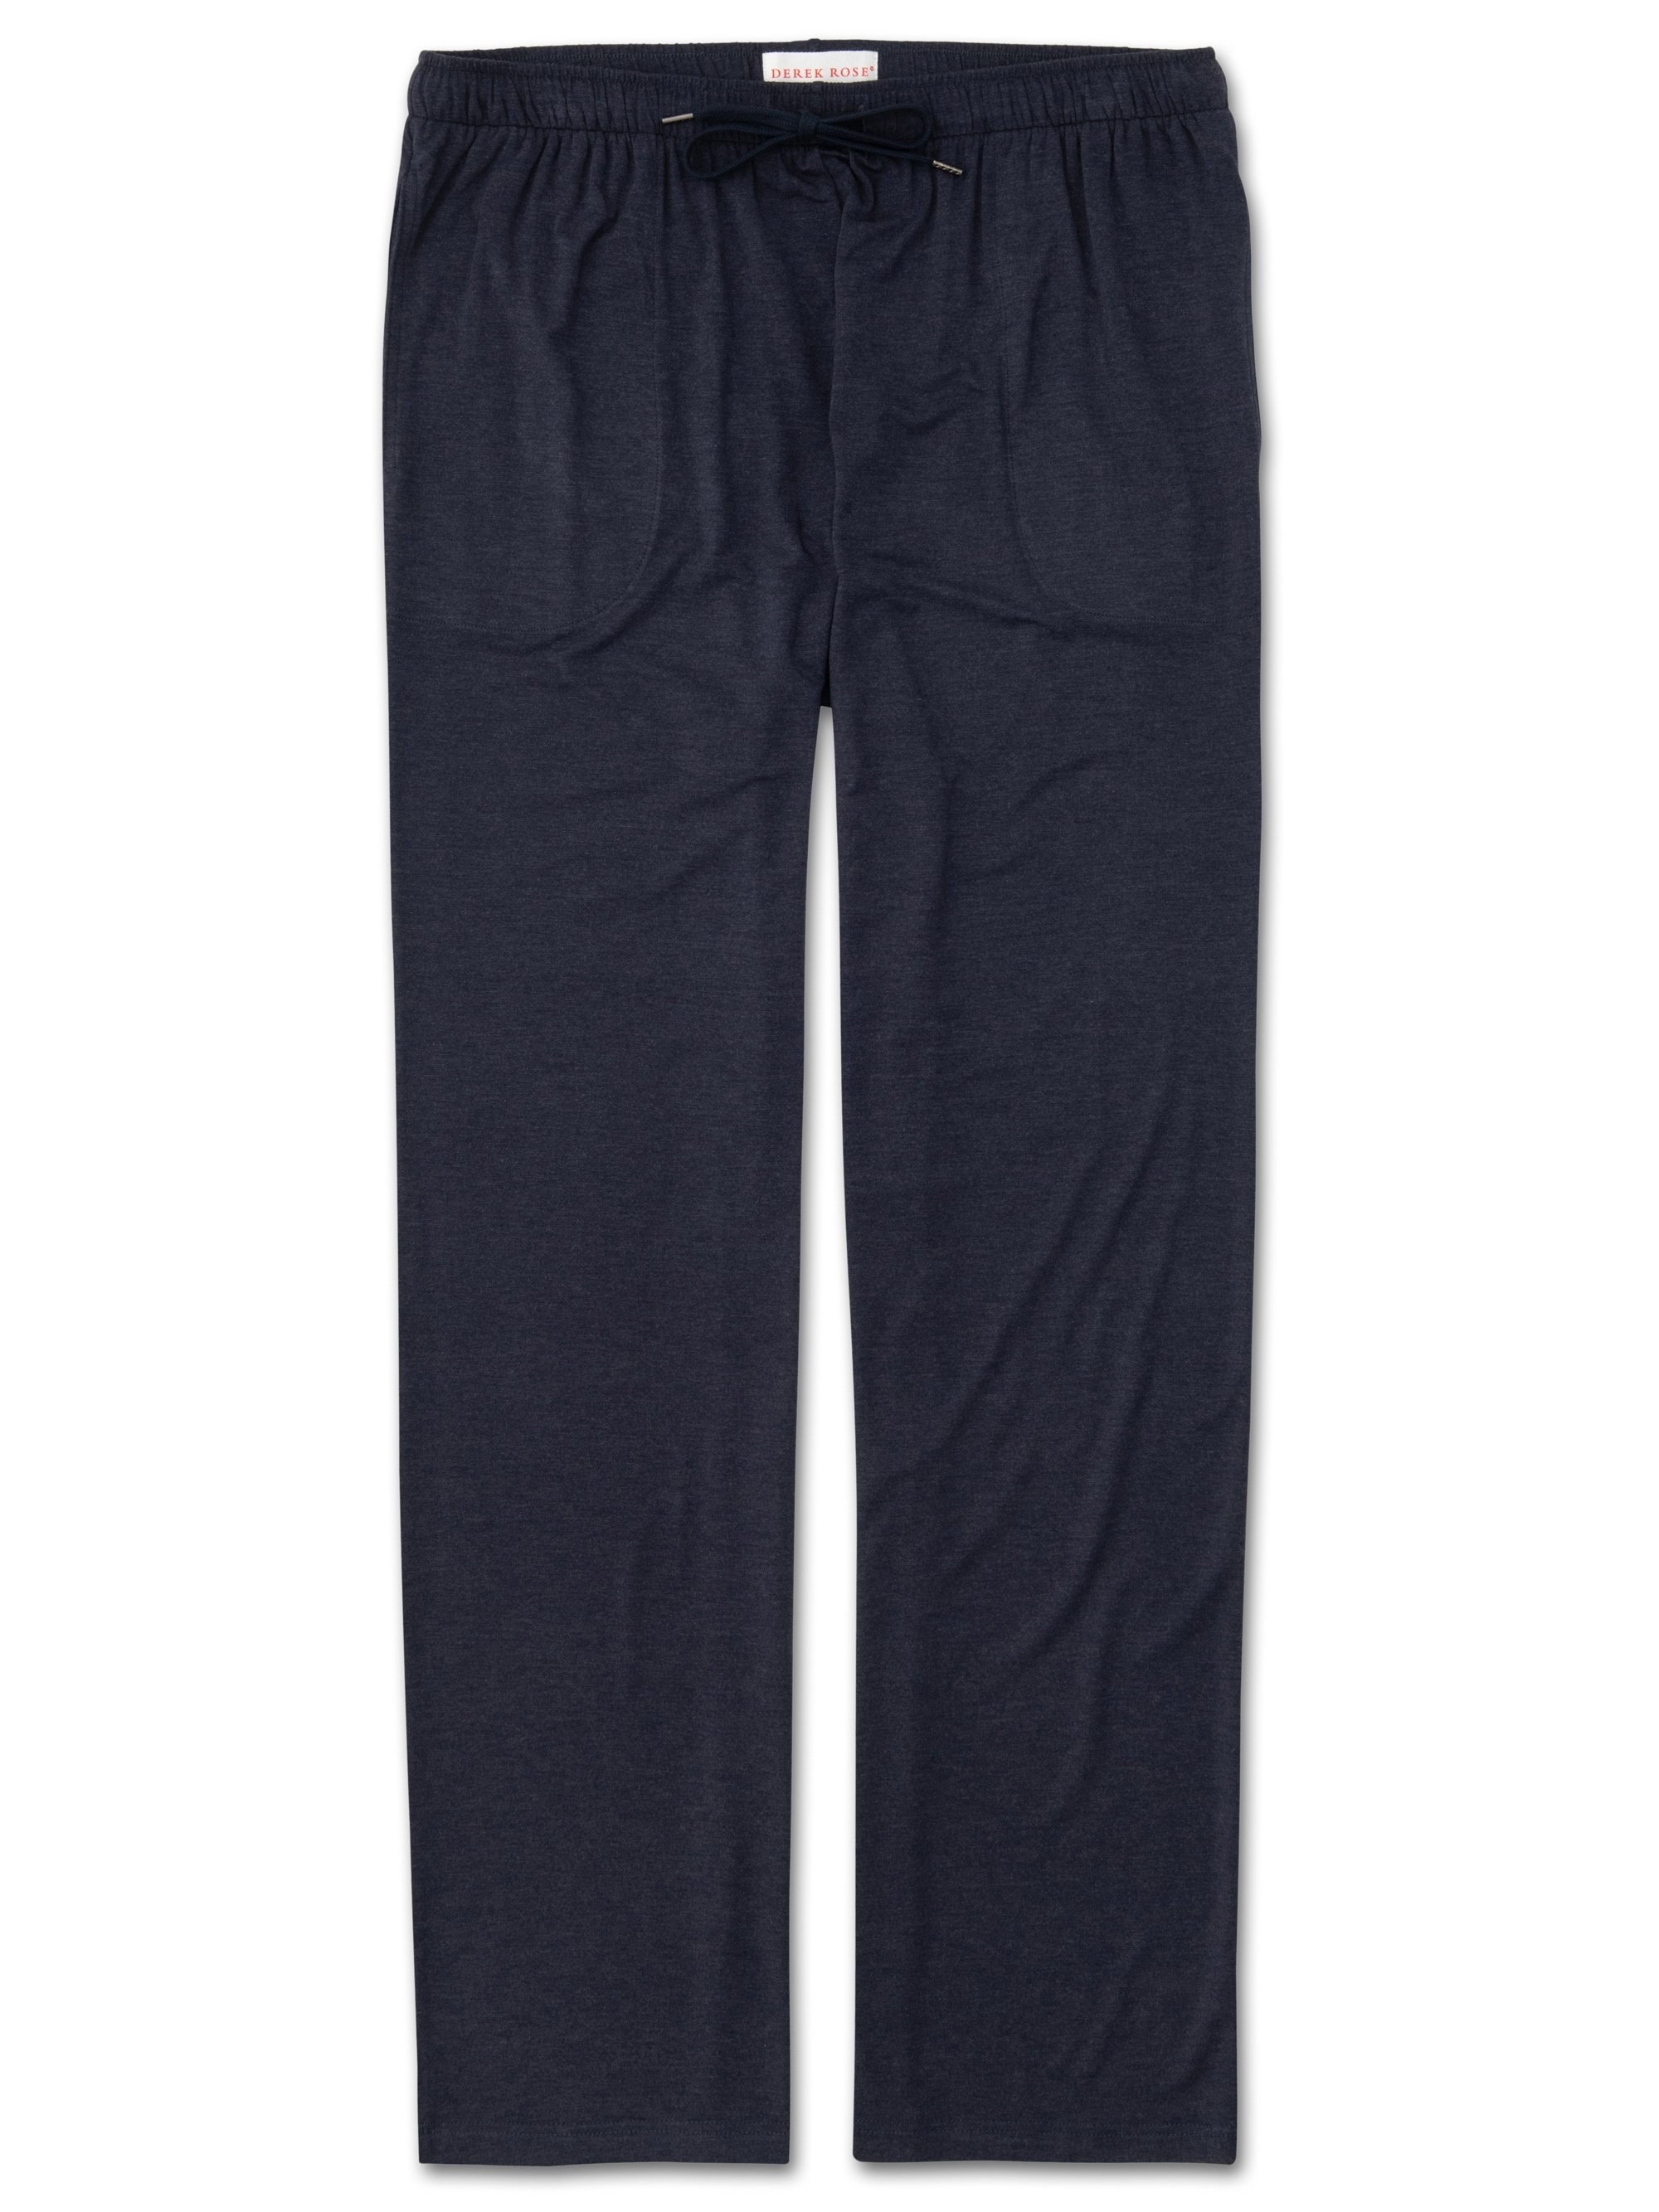 Men's Jersey Trousers Marlowe Micro Modal Stretch Navy